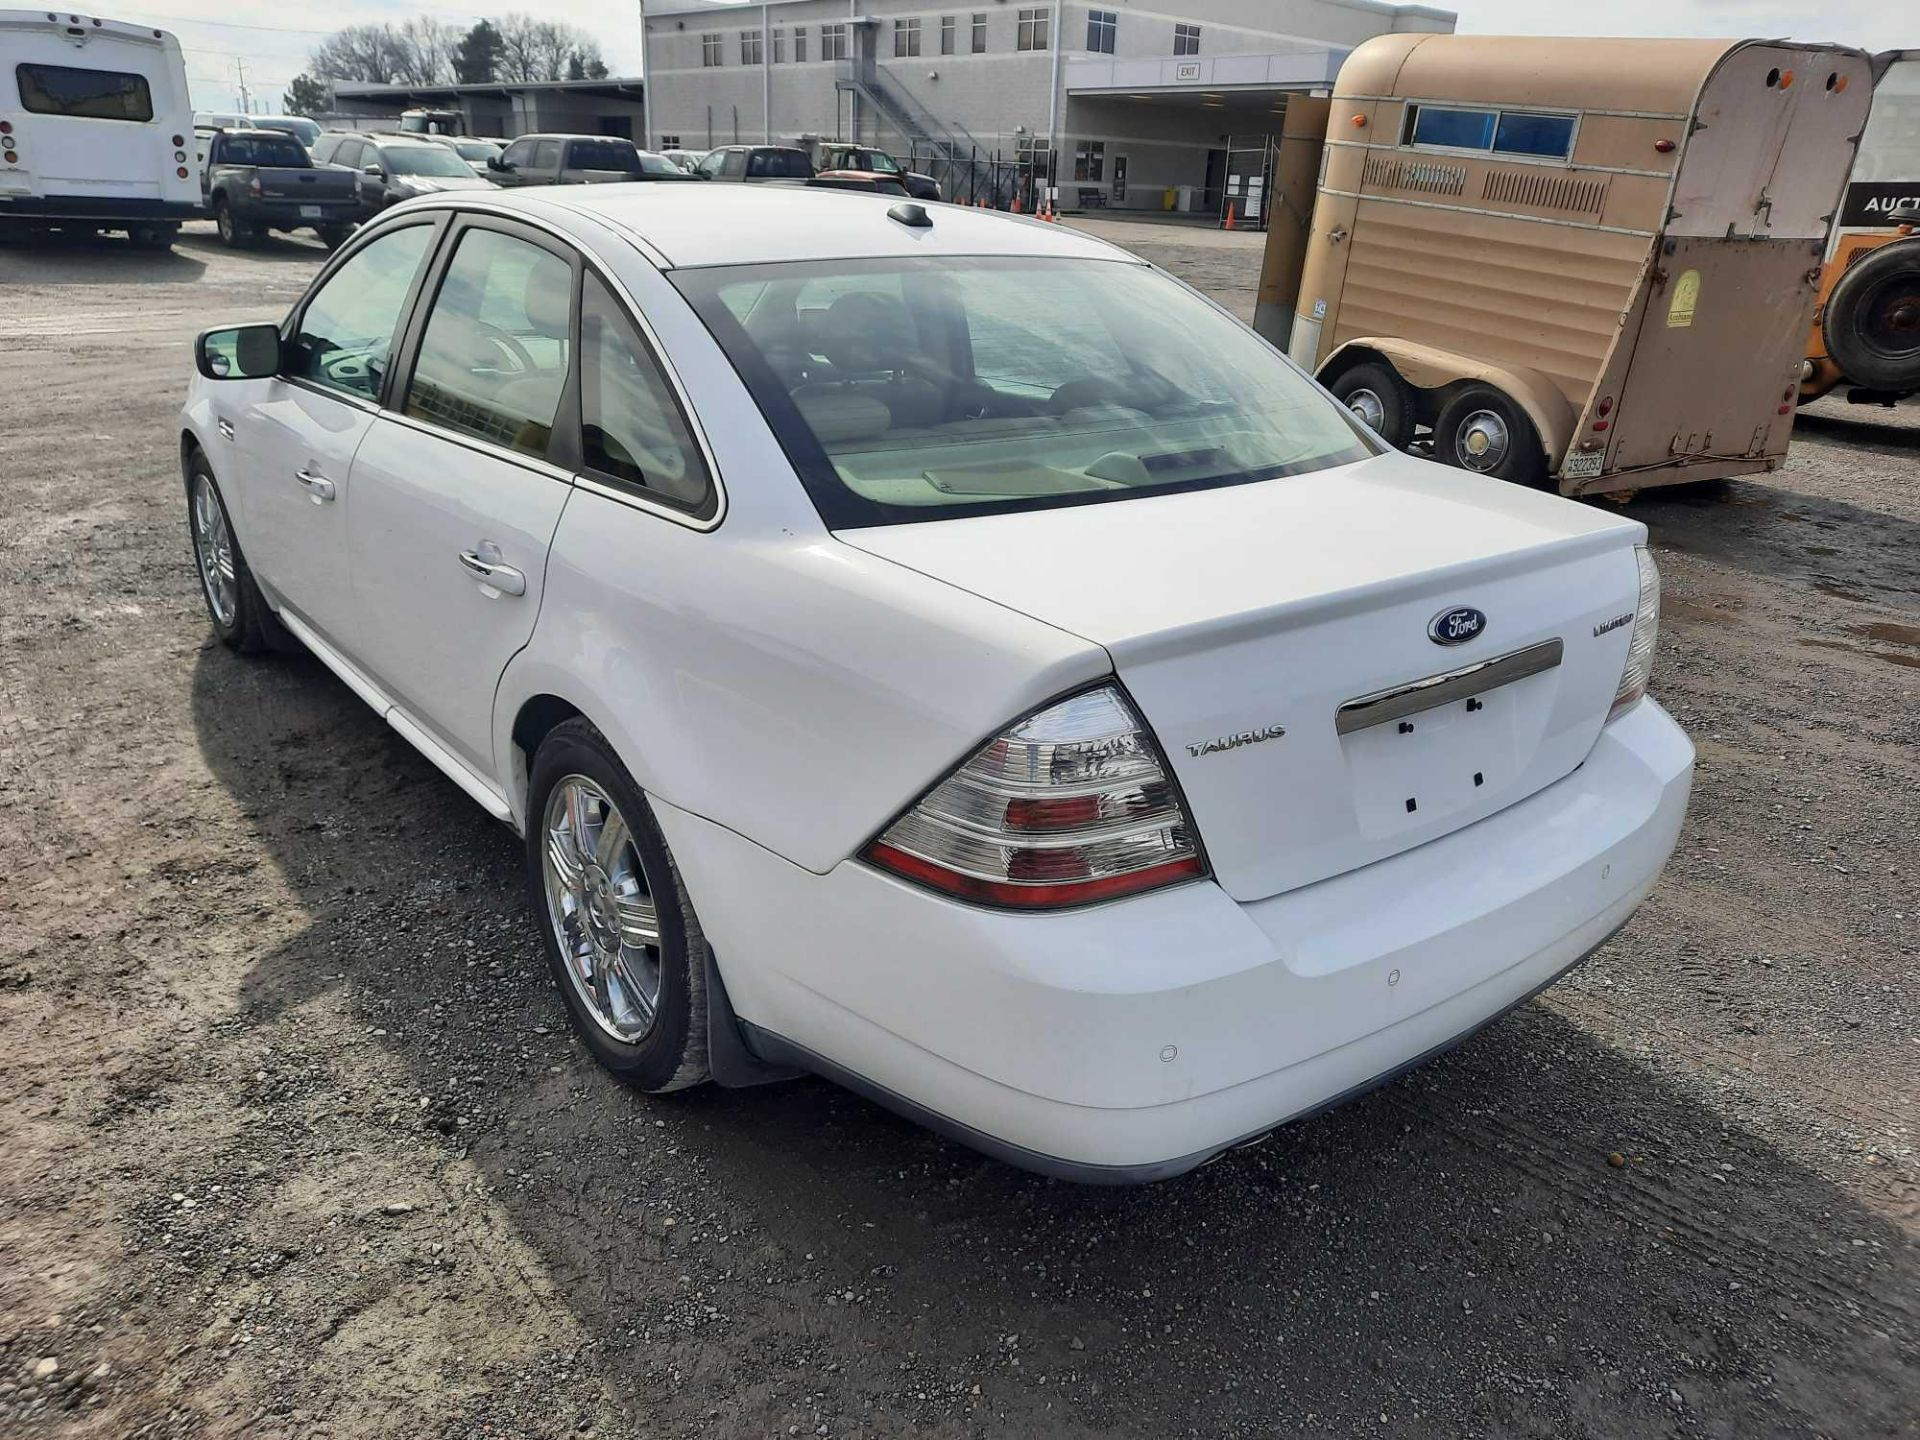 2008 FORD TAURUS LIMITED - Image 2 of 18